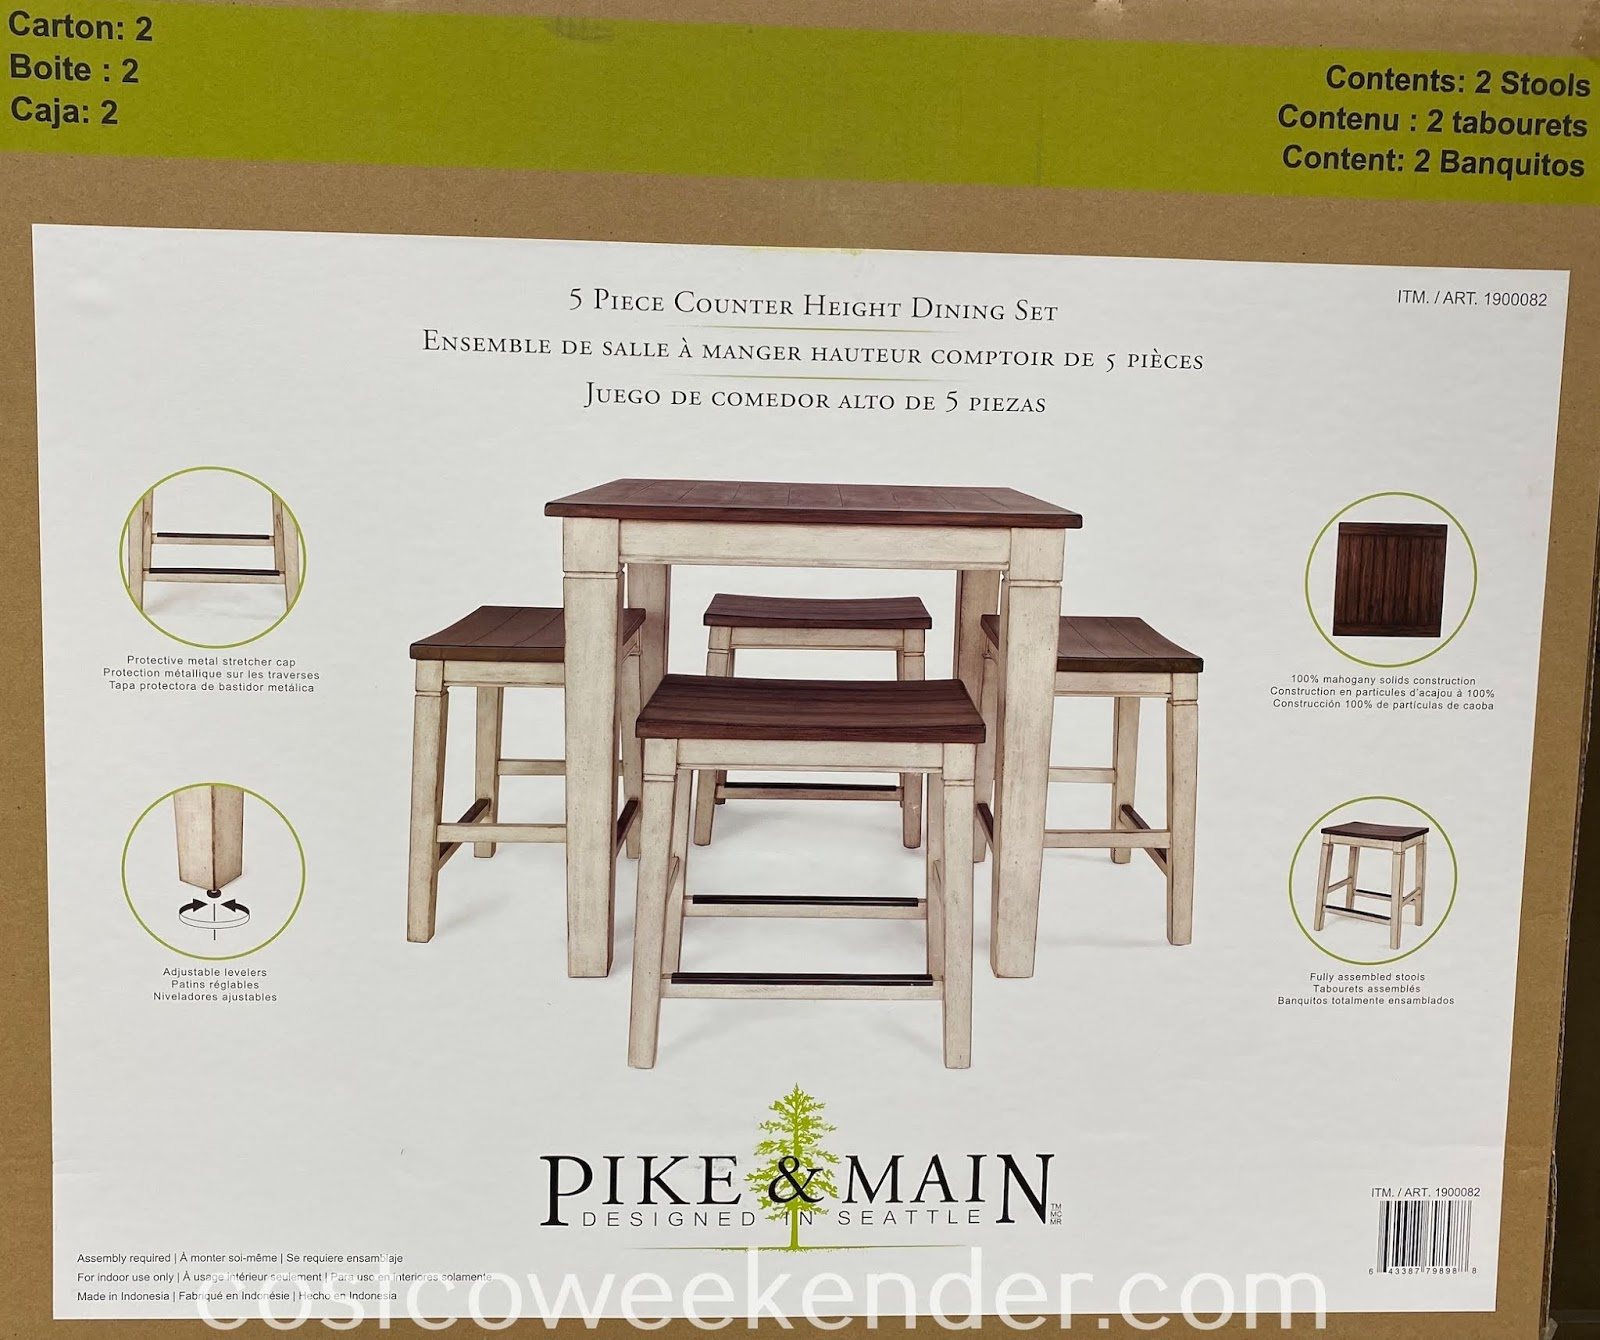 Costco 1900082 - Pike & Main Gibson Counter Height Dining Set: functional and stylish